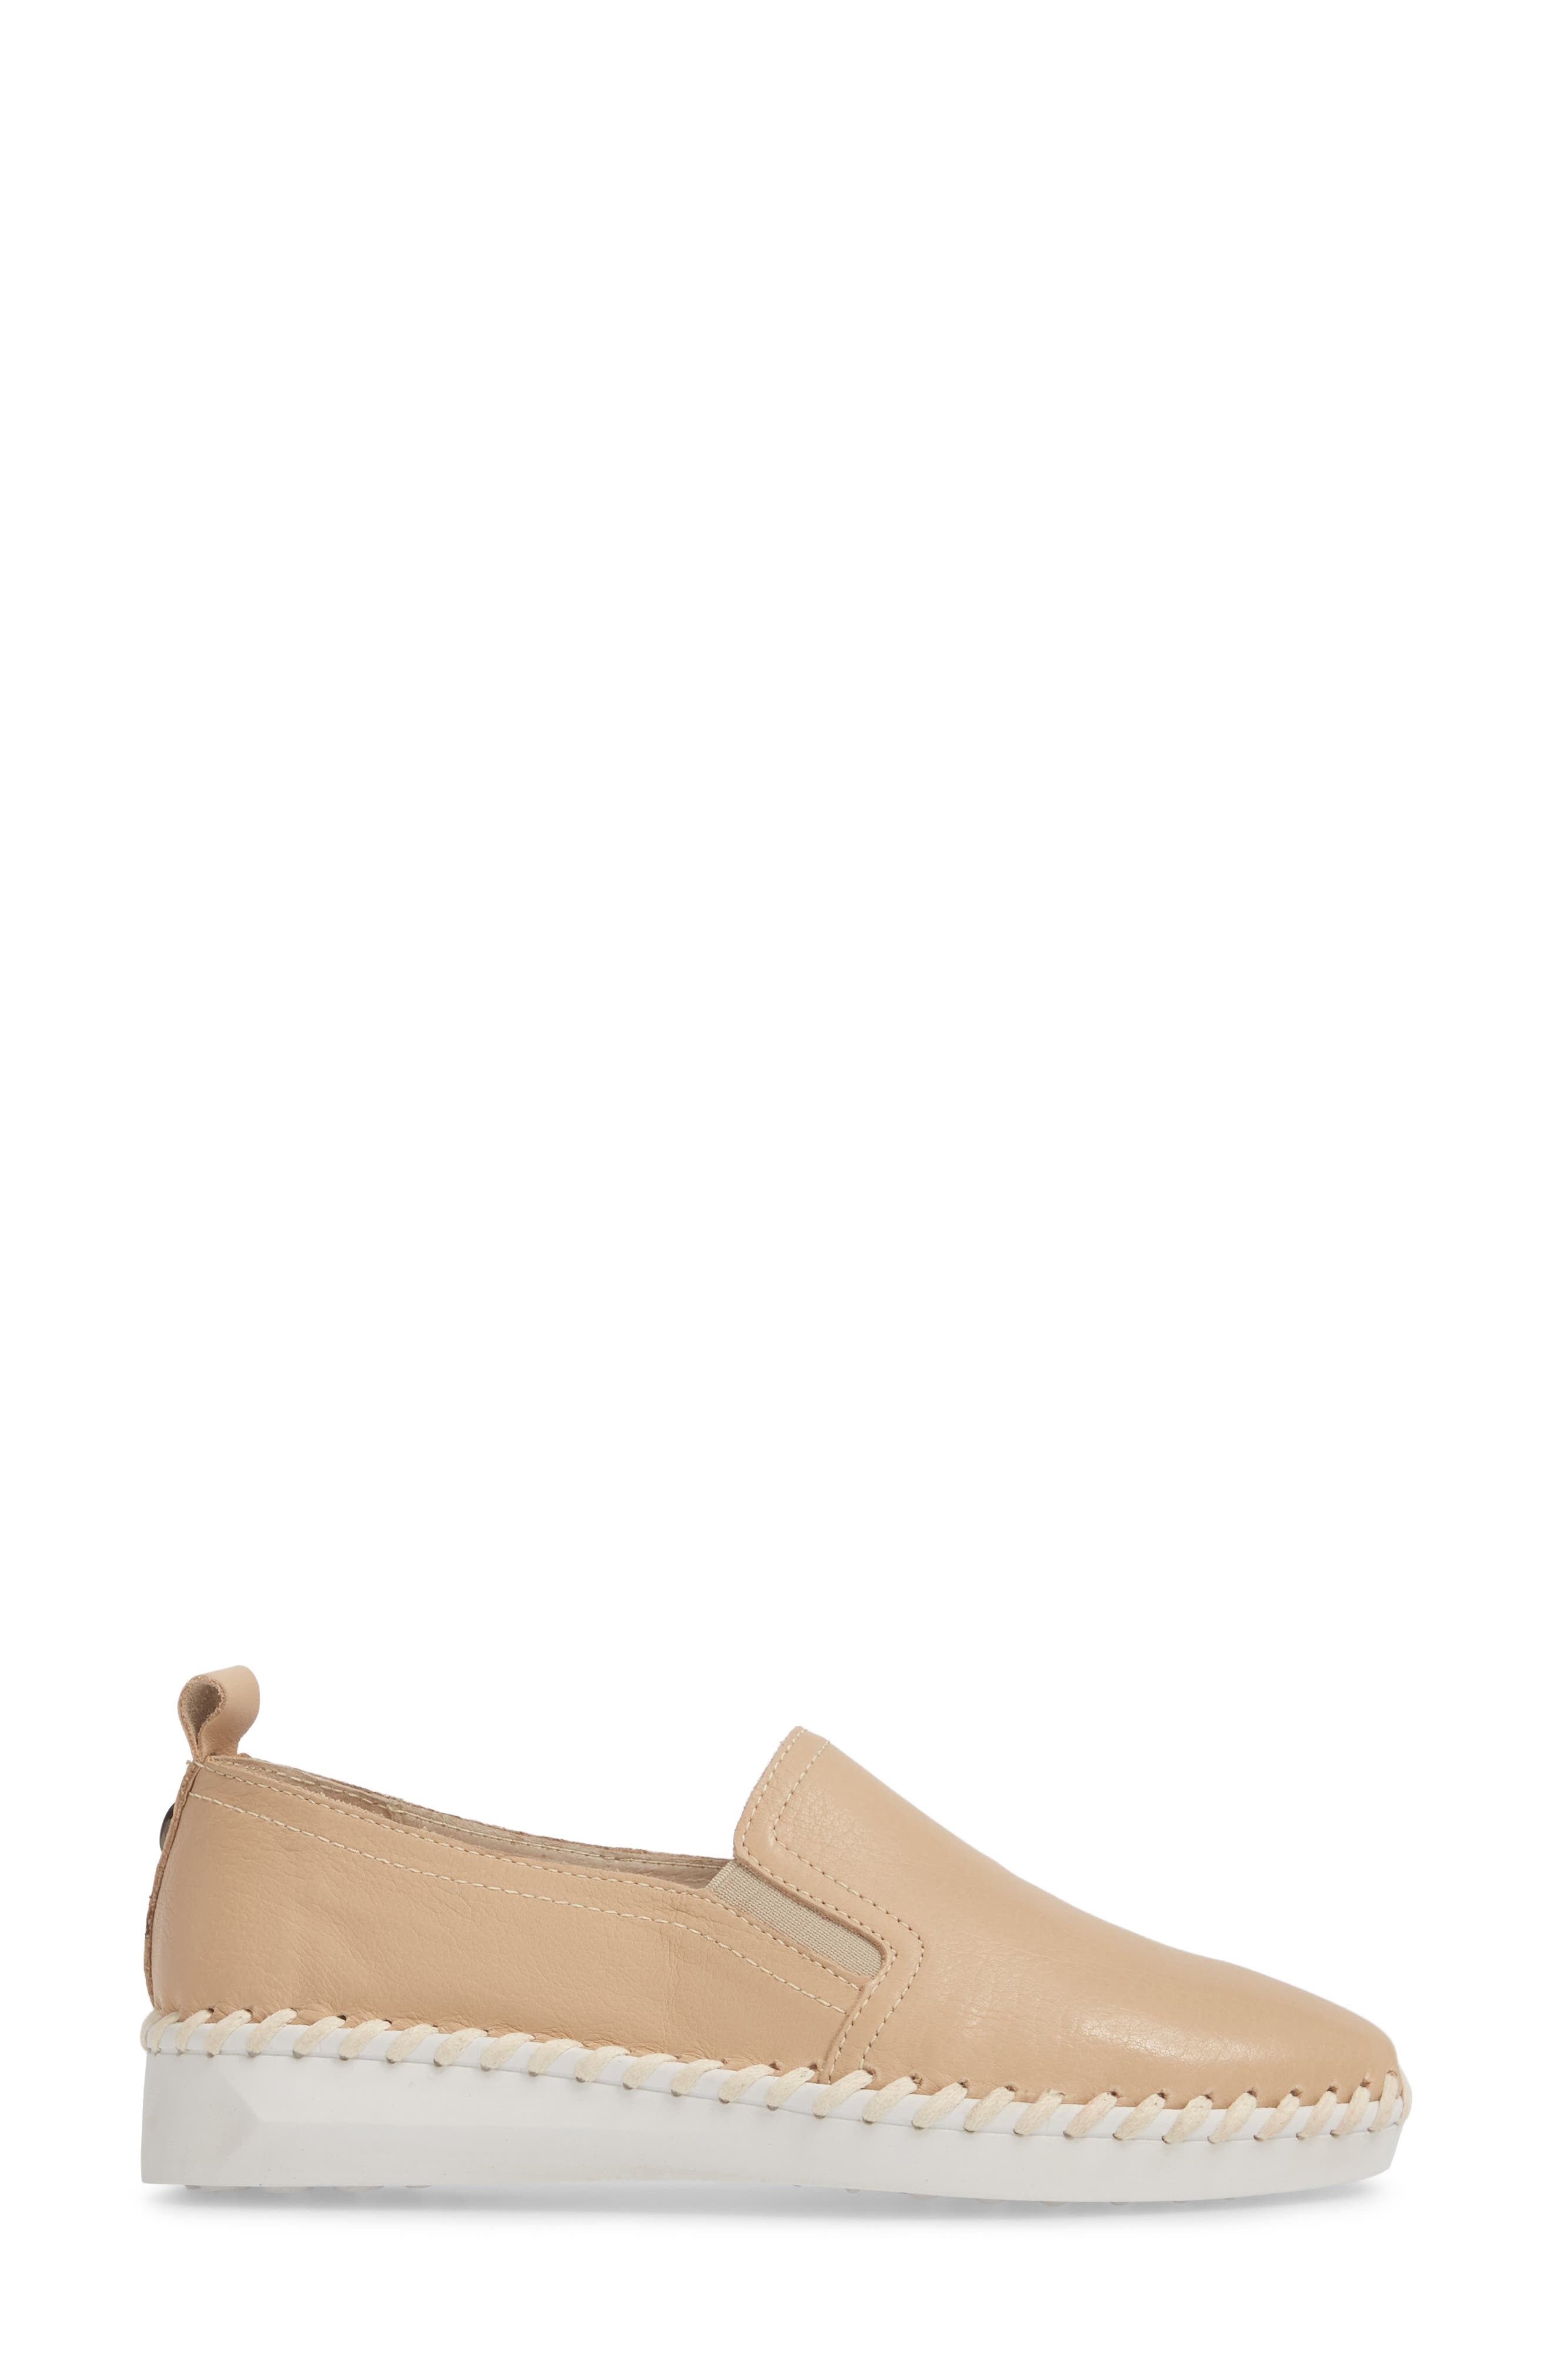 TW85 Slip-On Sneaker,                             Alternate thumbnail 3, color,                             NUDE LEATHER